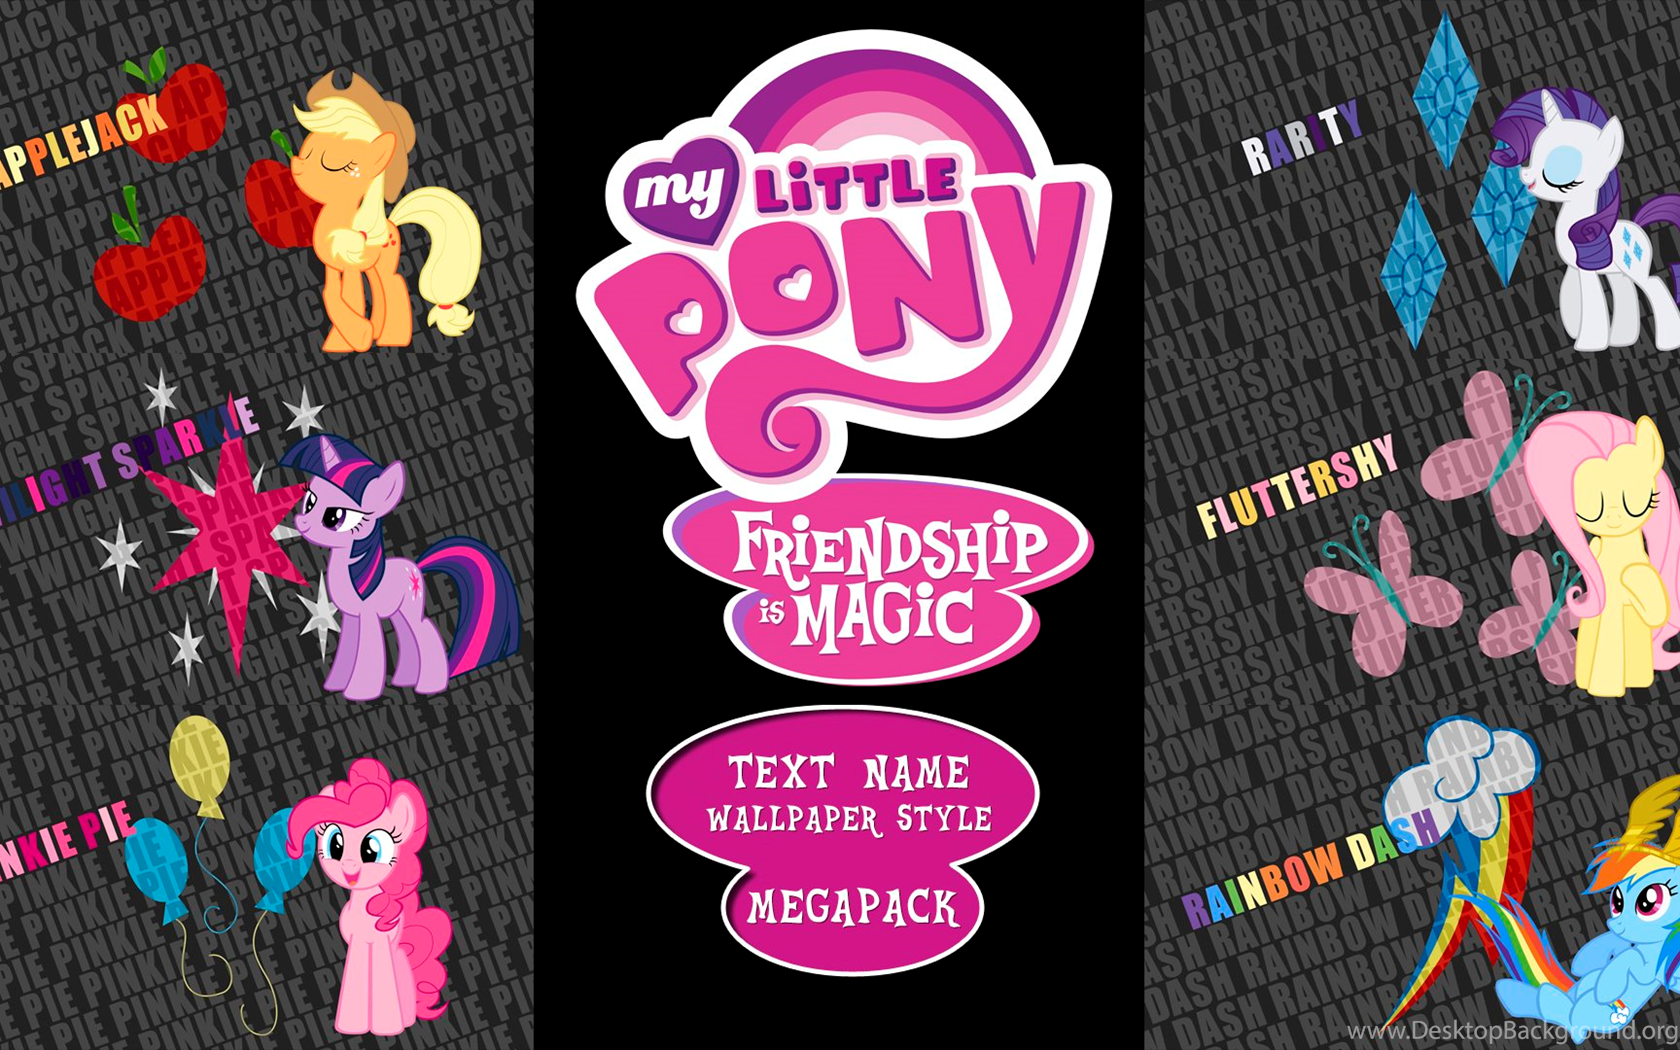 deviantart: more like my little pony: fim 'text name' wallpapers